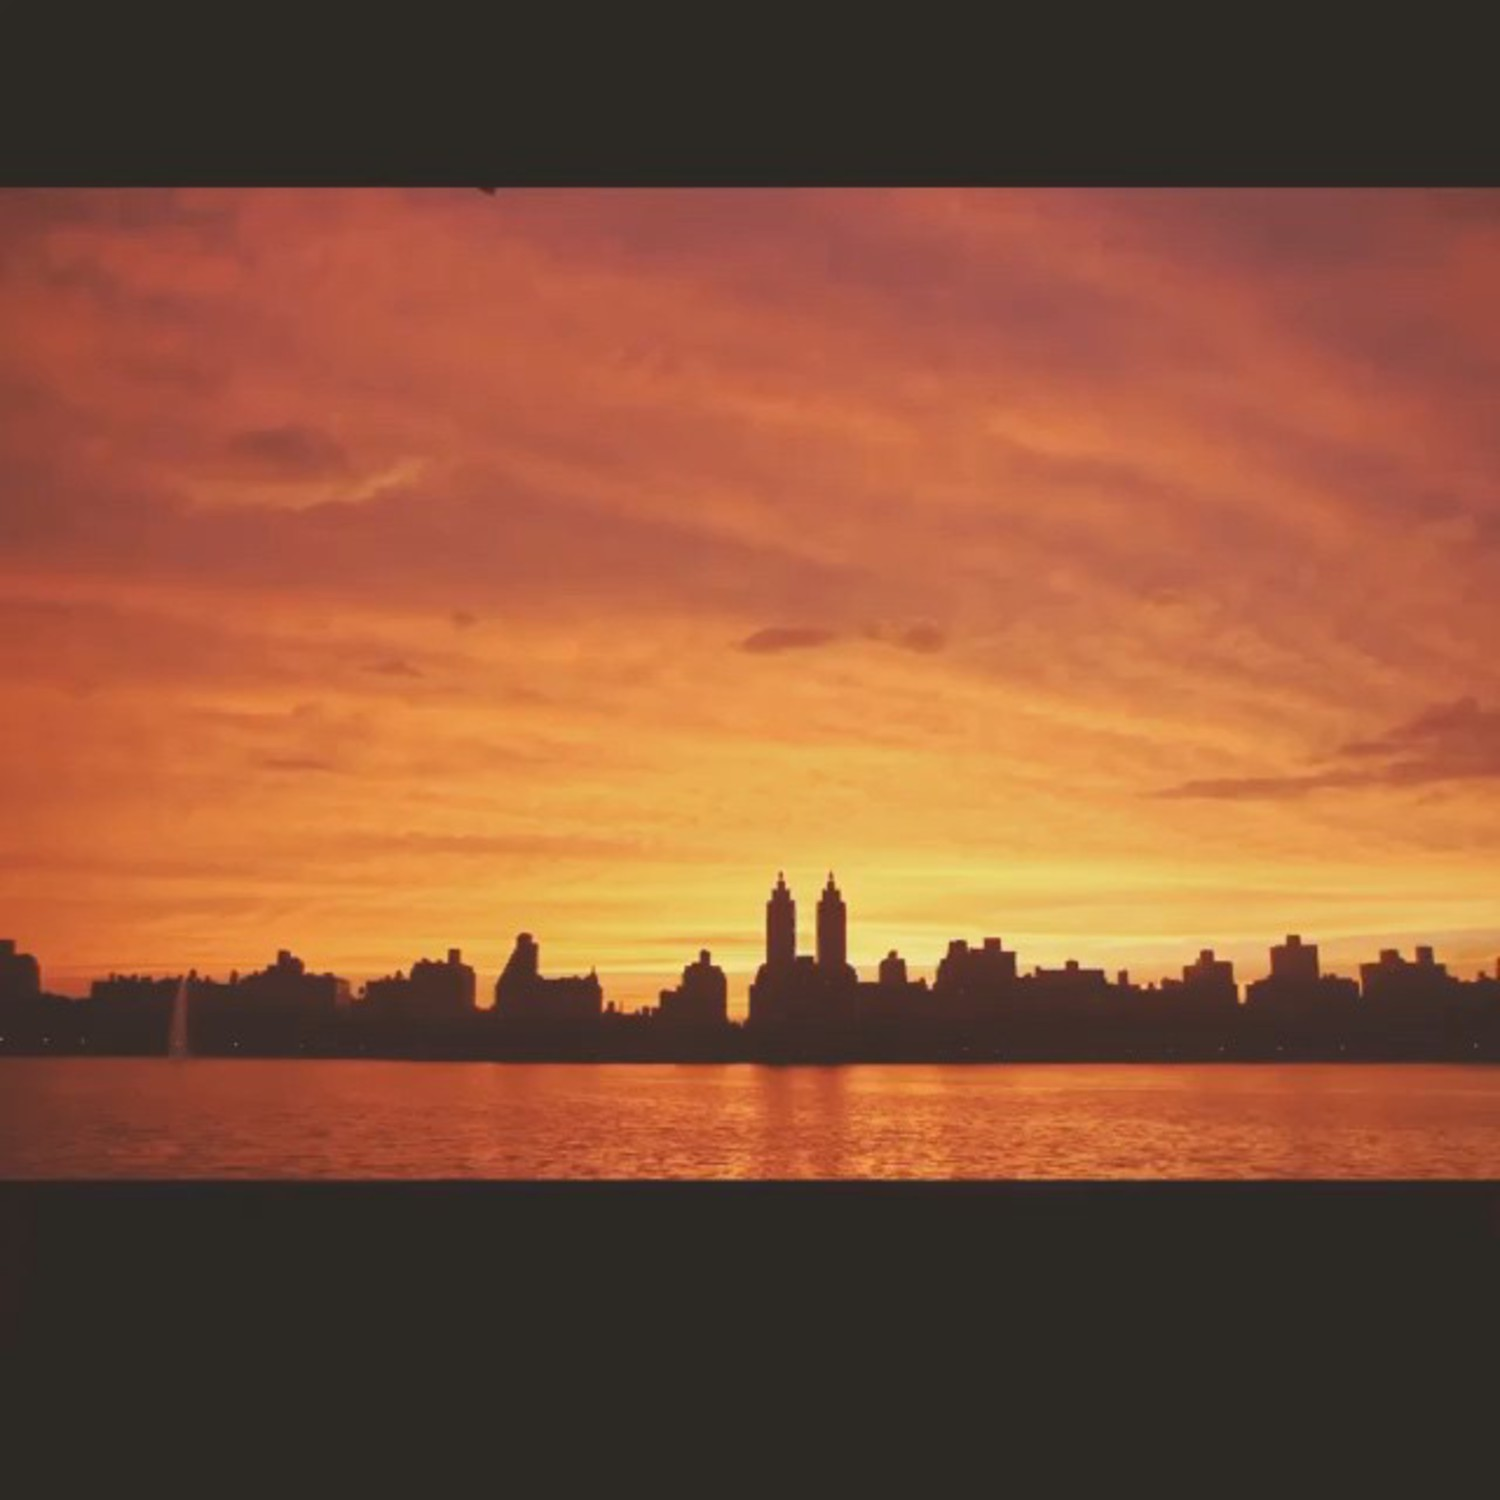 Thundering calm of last night's NYC sunset over the Upper West Side. Timelapse by @jaysansone @nycprimeshot